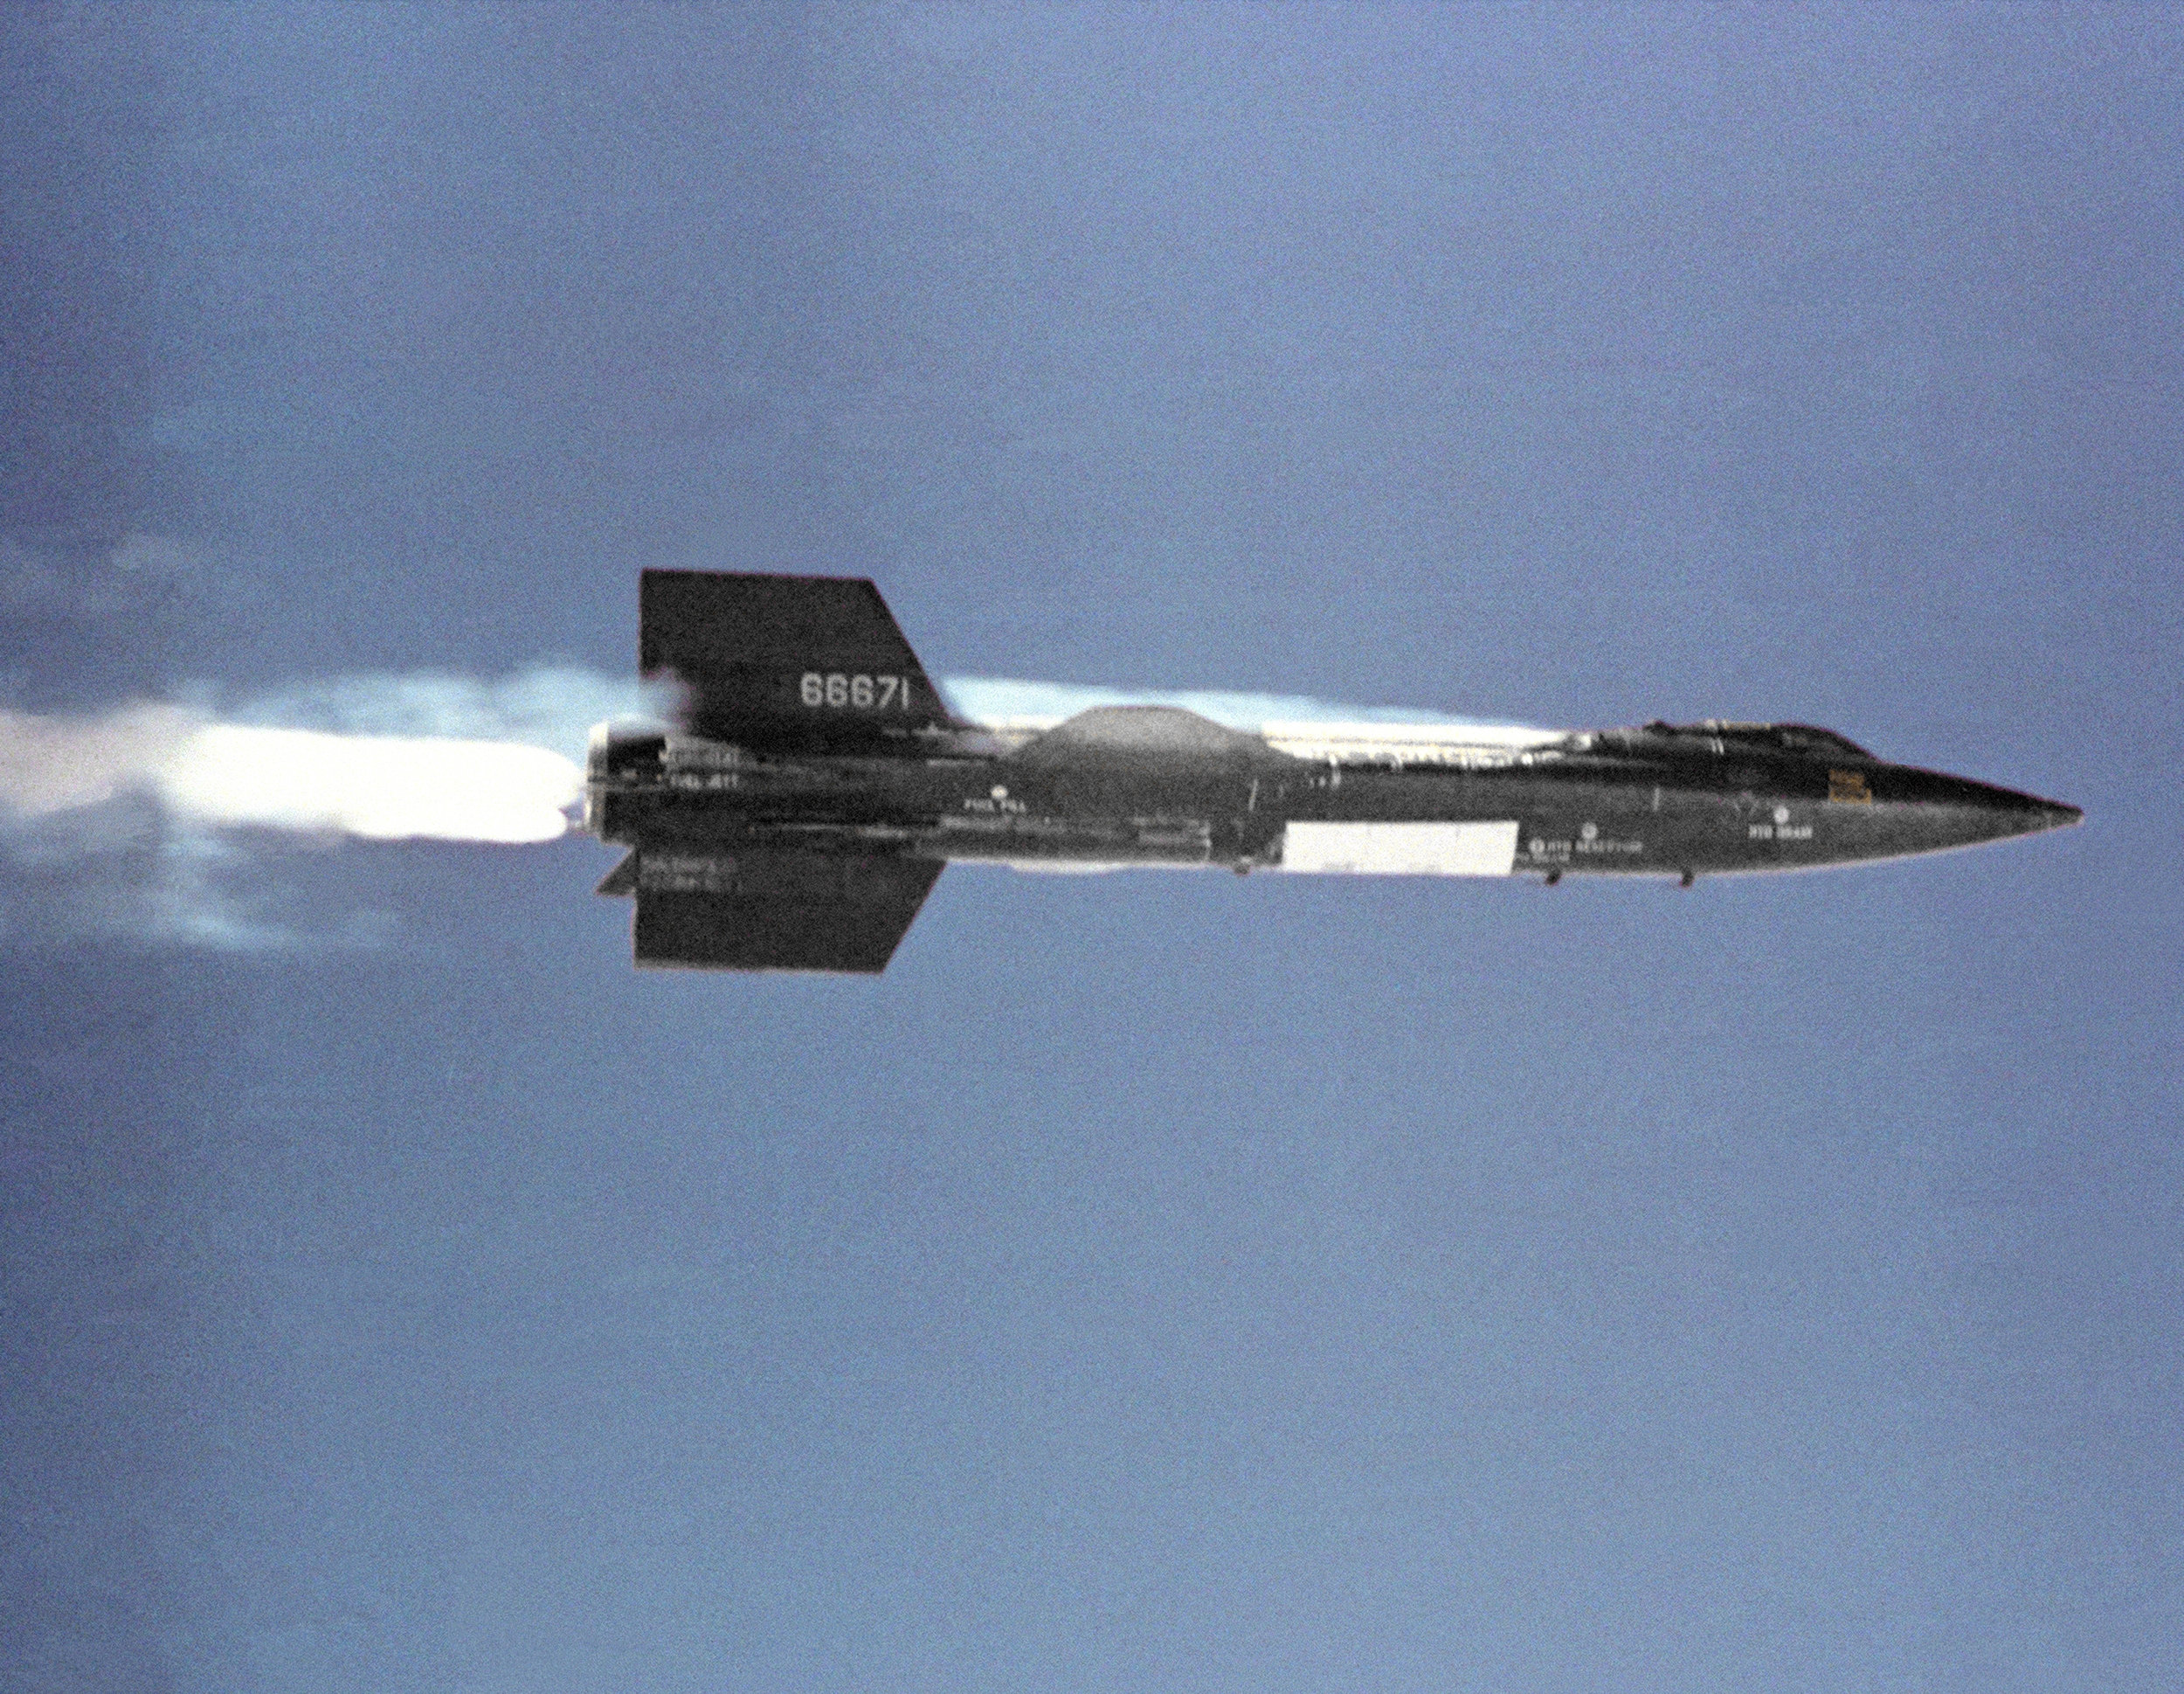 X-15, rocket powered  plane traveling at hypersonic speeds